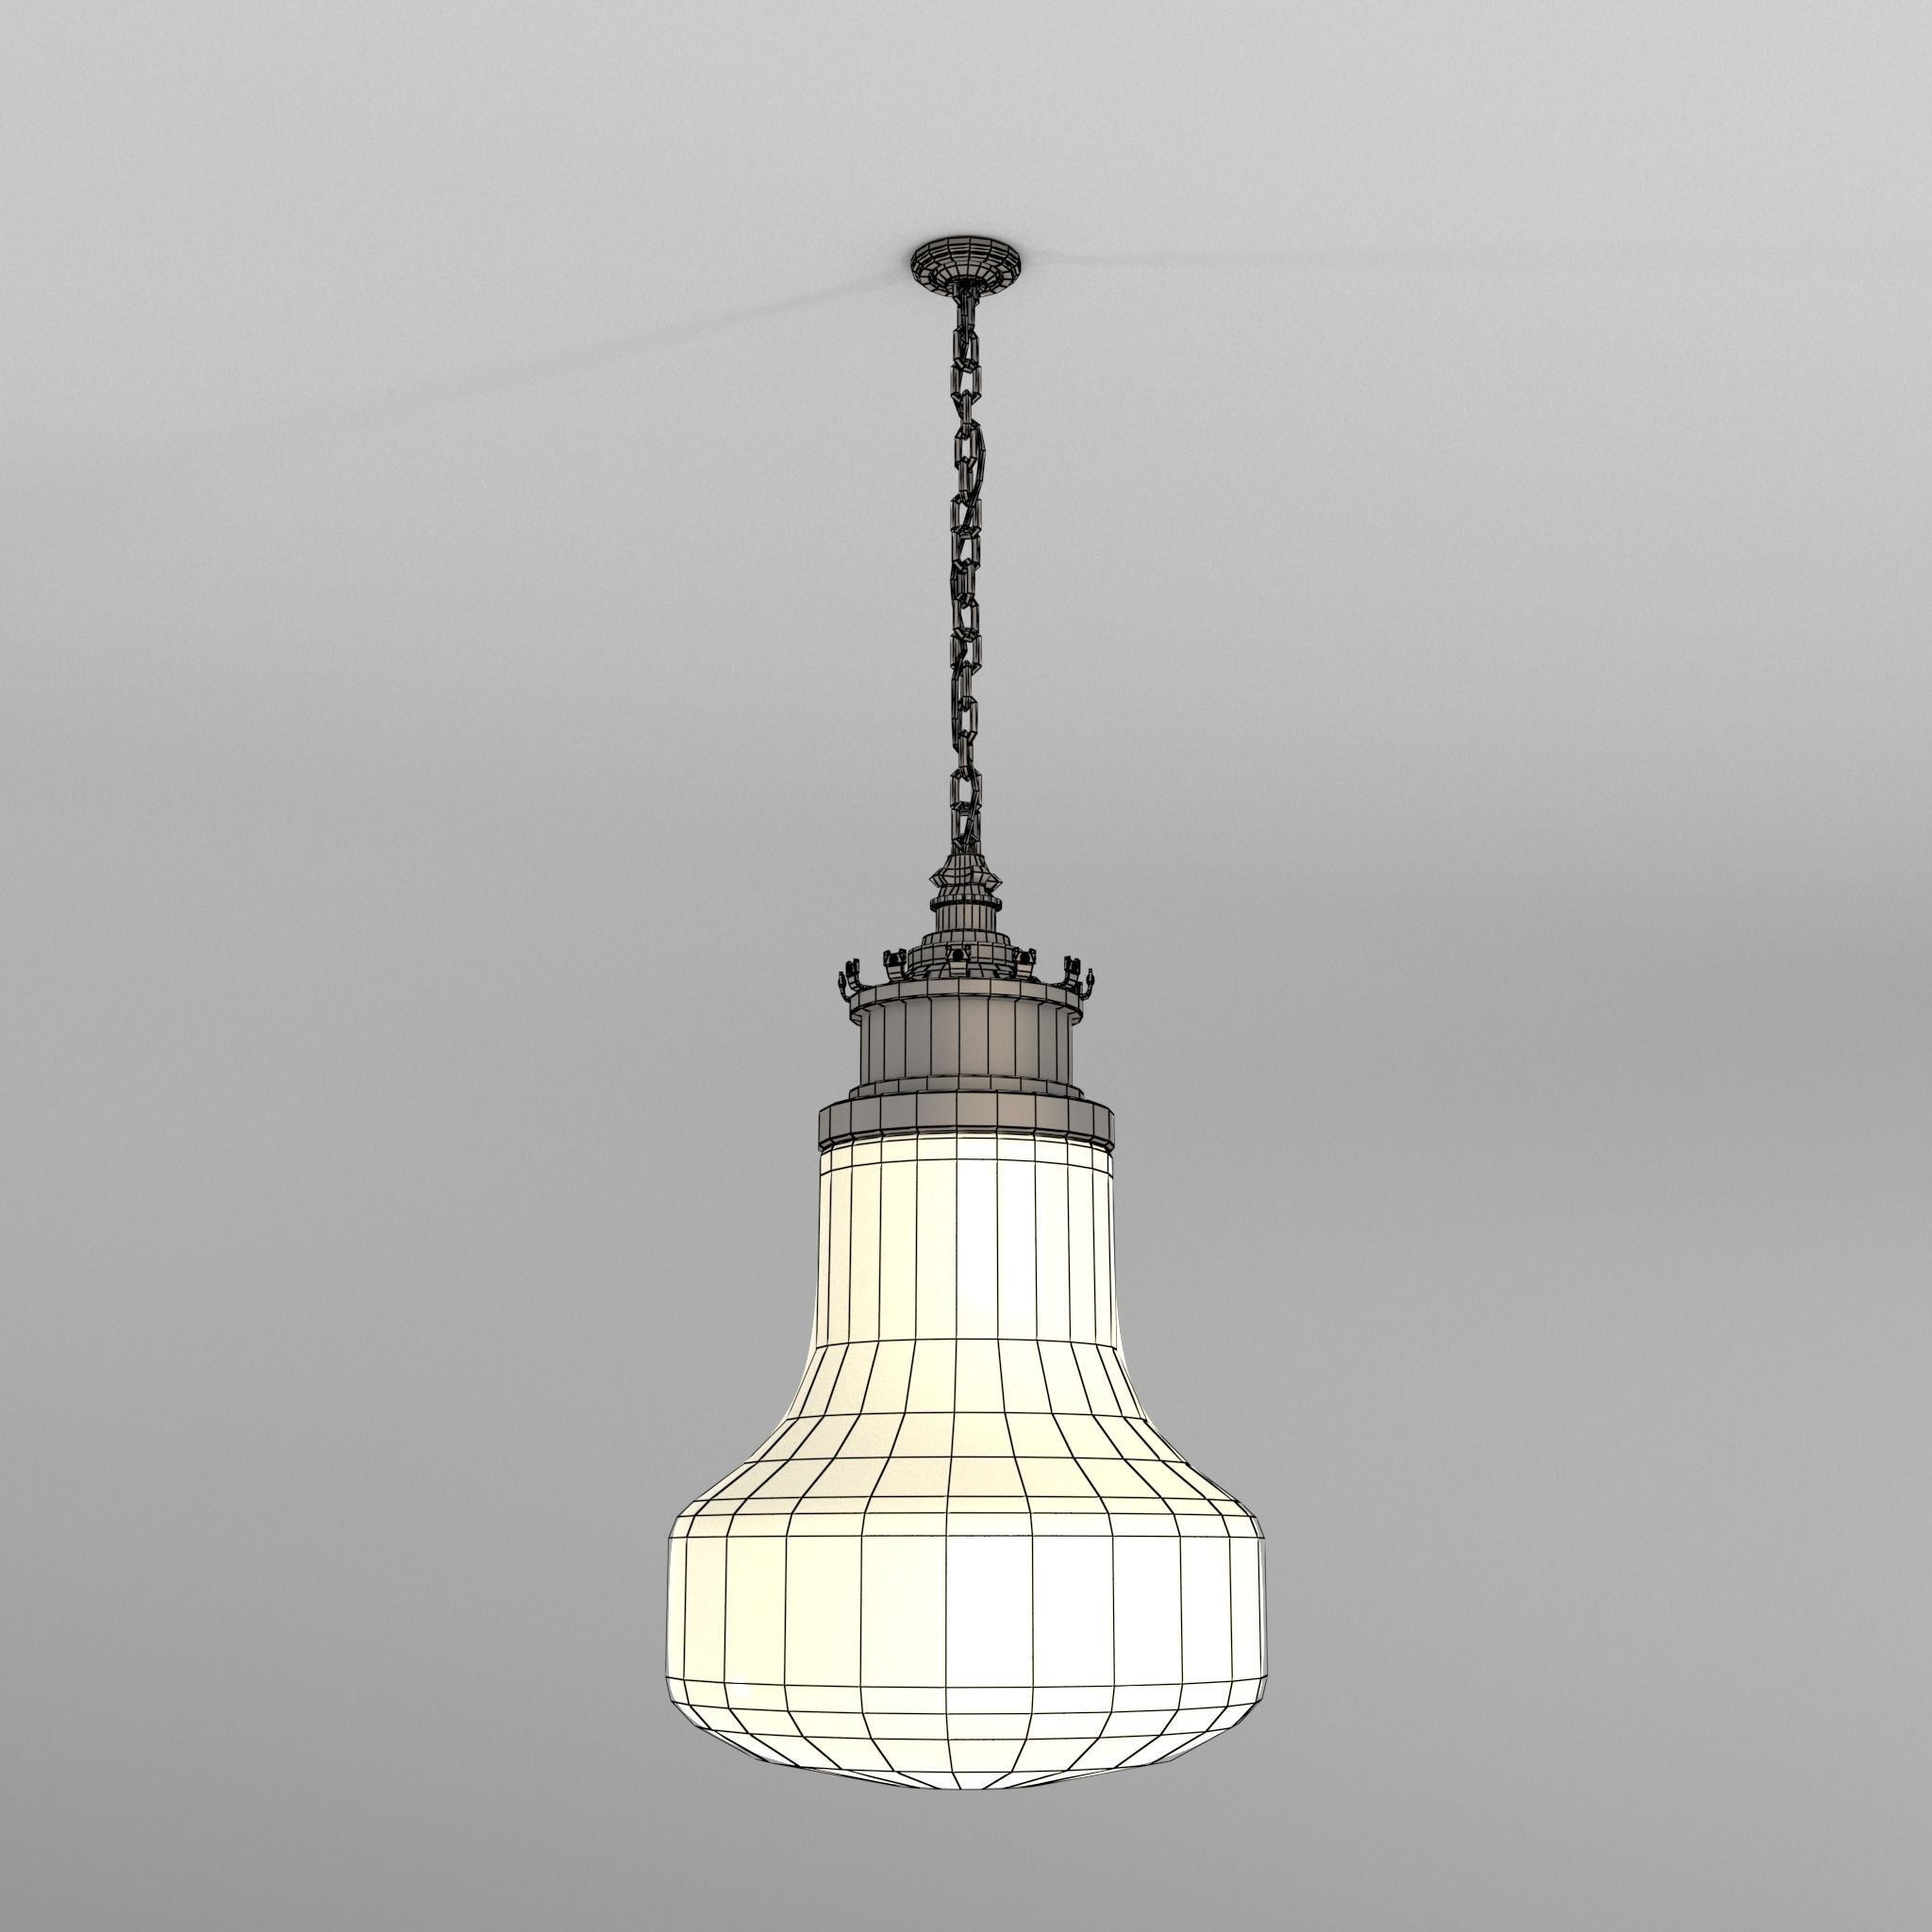 furniture lighting runde by f french chandeliers ceiling master art sale original org armige deckenleuchte id light at lights lamp for ceilings deco web pendant petitot